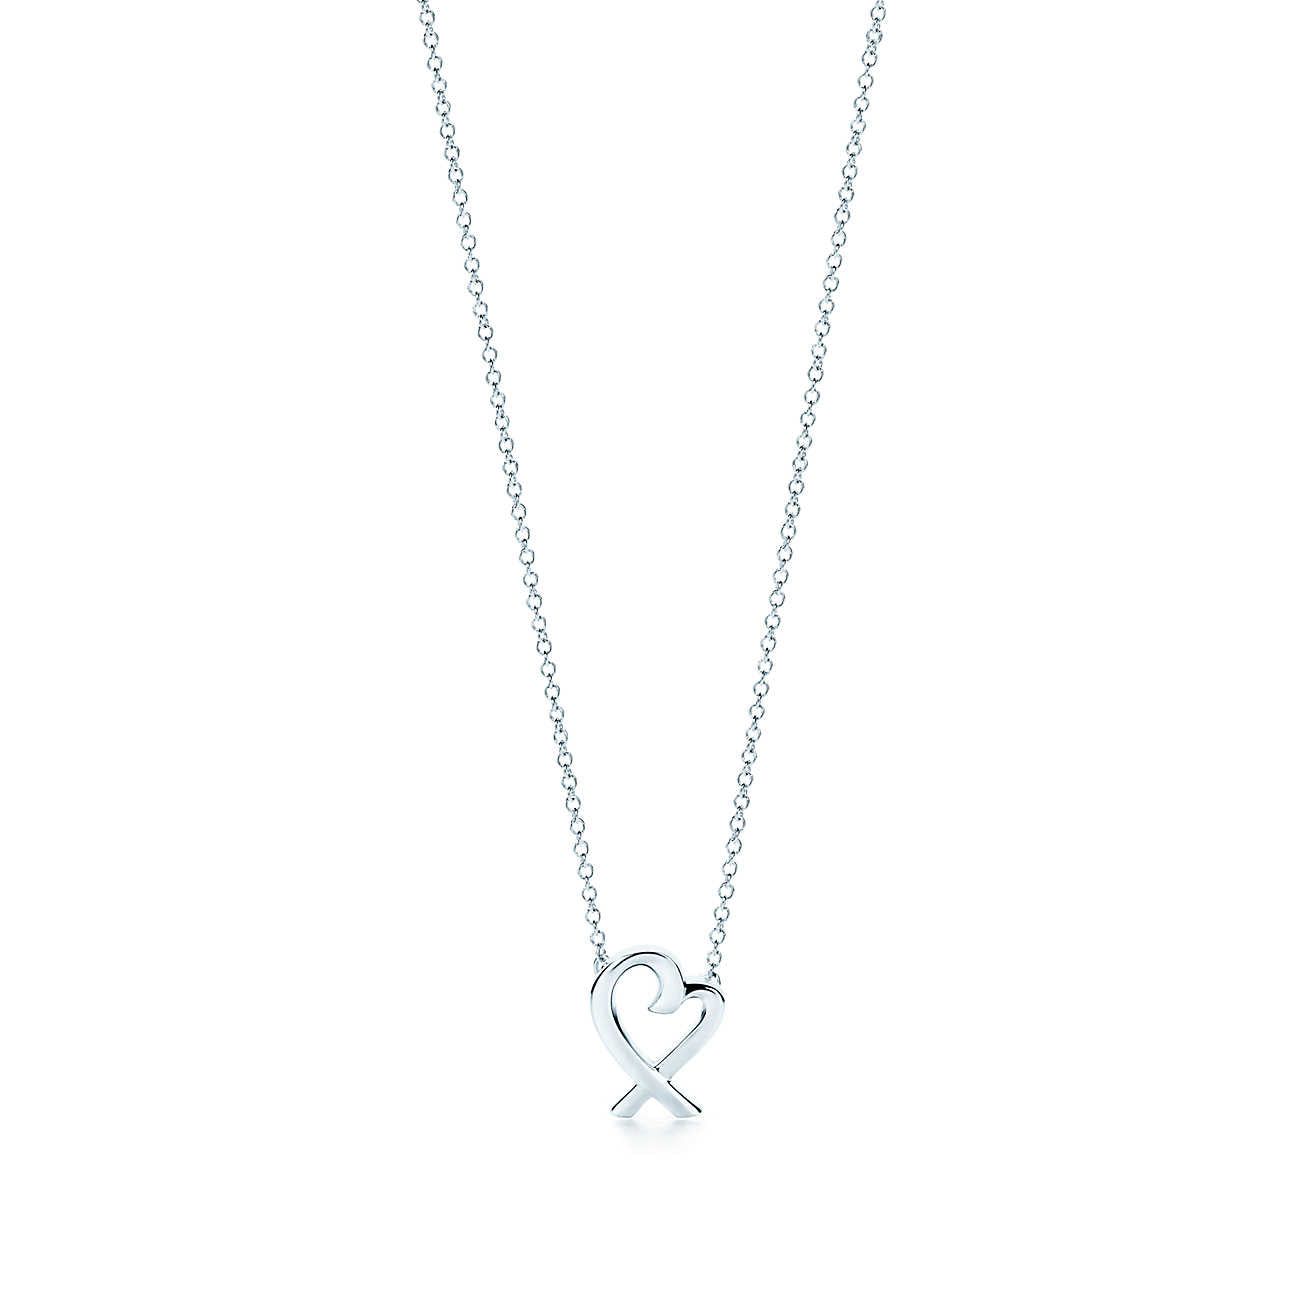 Tiffany co sterling silver paloma picasso loving heart pendant sterling silver paloma picasso loving heart pendant necklace aloadofball Gallery